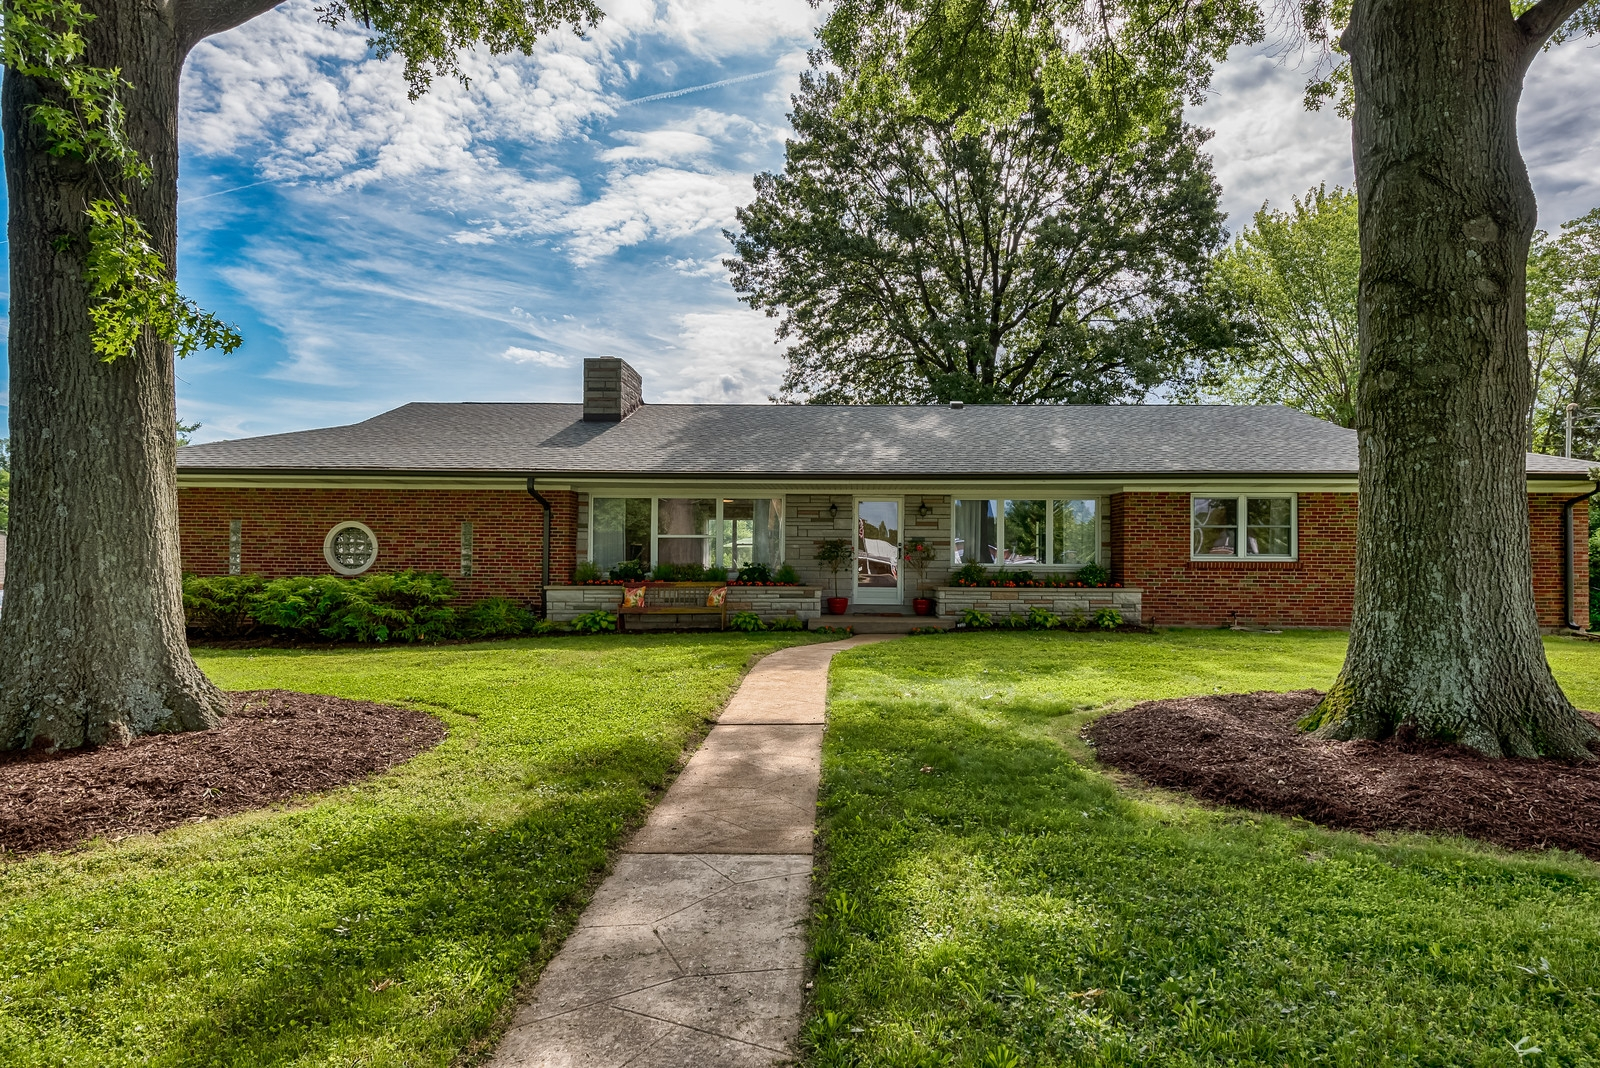 Photographs of a home on Sappington Road in Crestwood, Missouri for Live Local Real Estate Group agent / broker Ginger Fawcett.